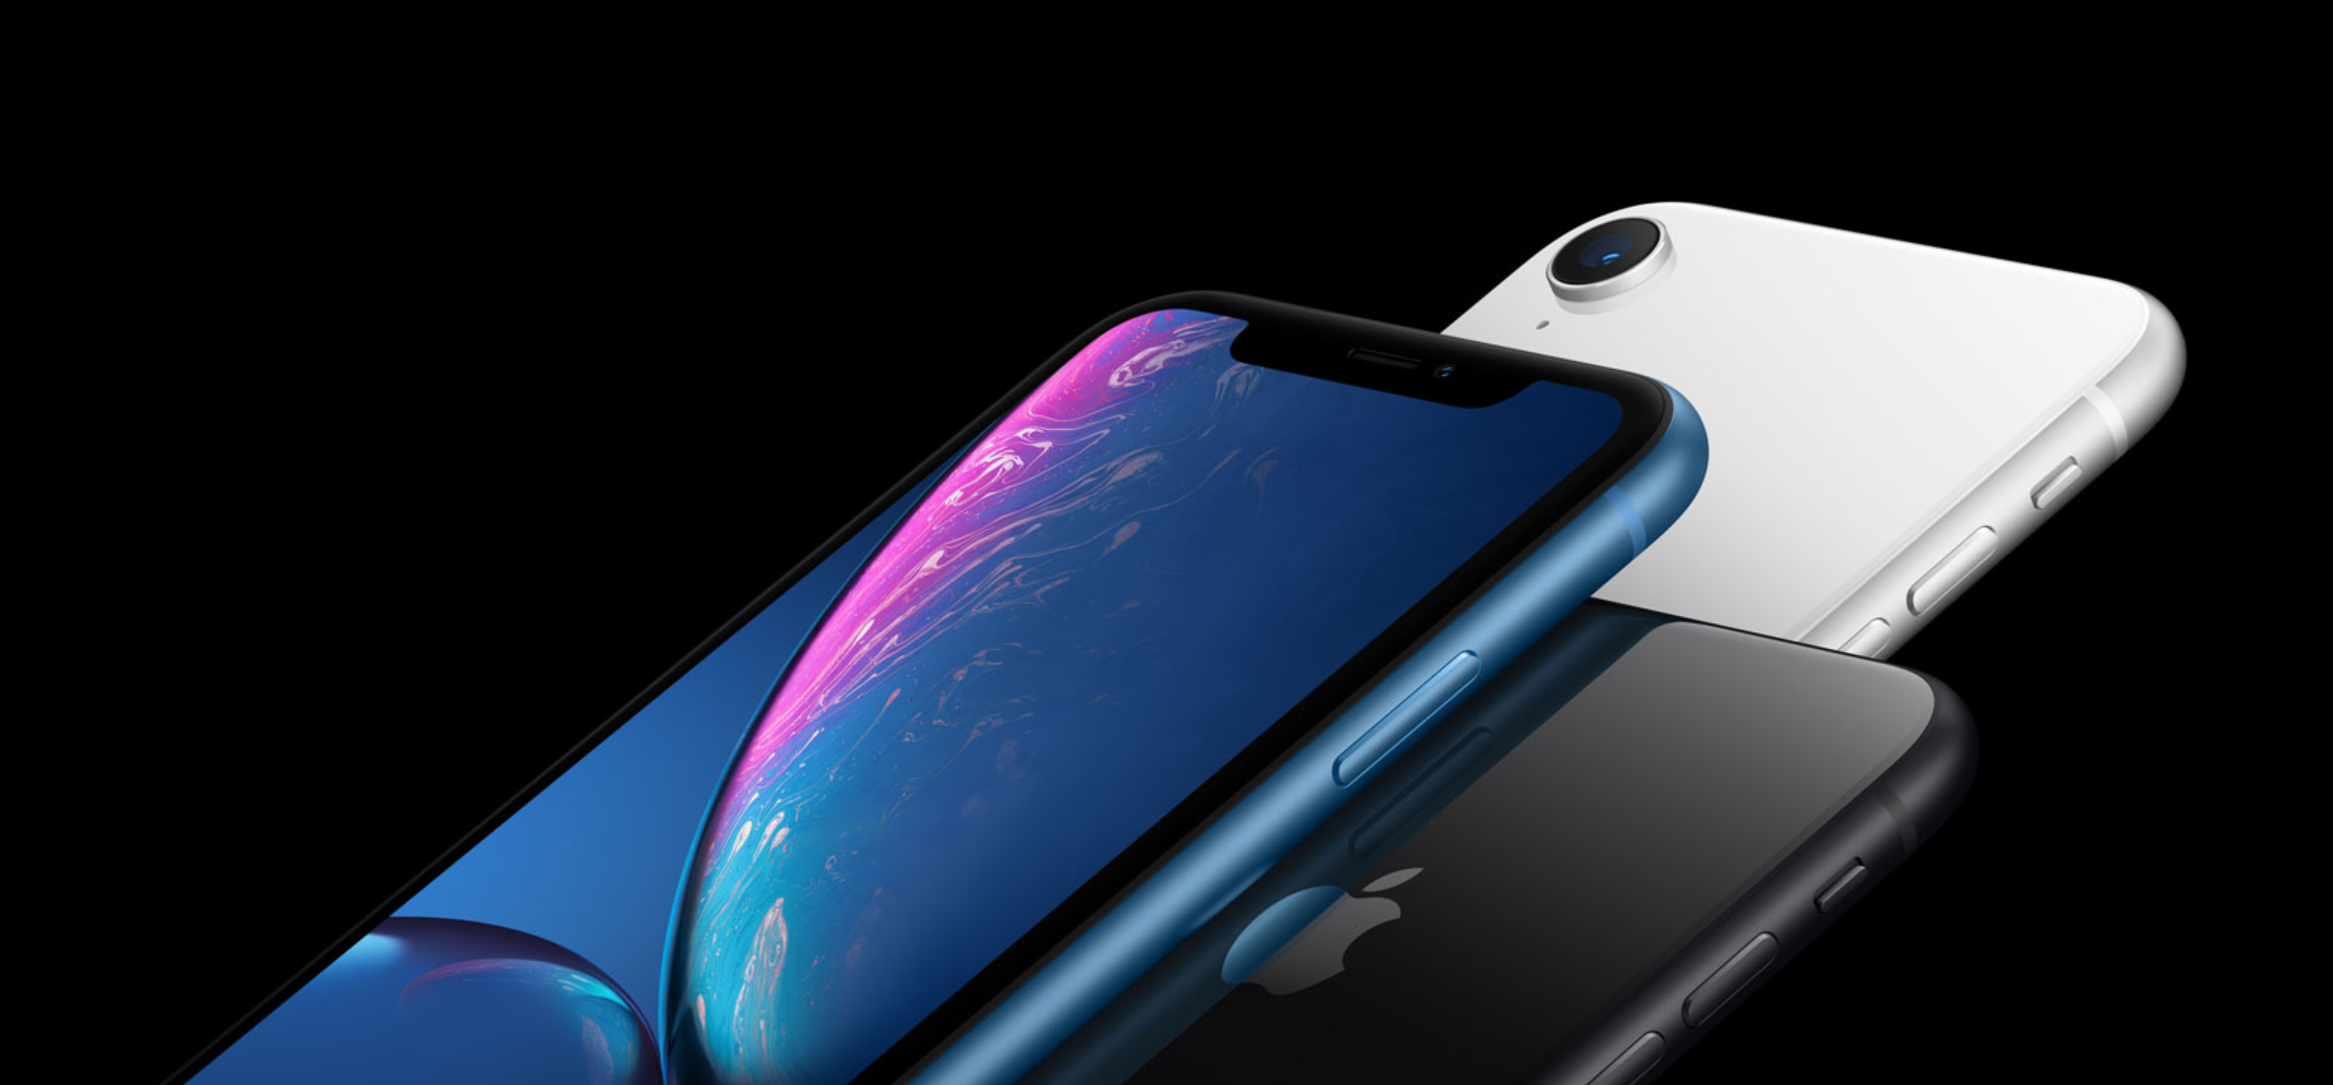 Apple iPhone XR 1 Apple Tipped To Take On 'Tile' Tracking Tags